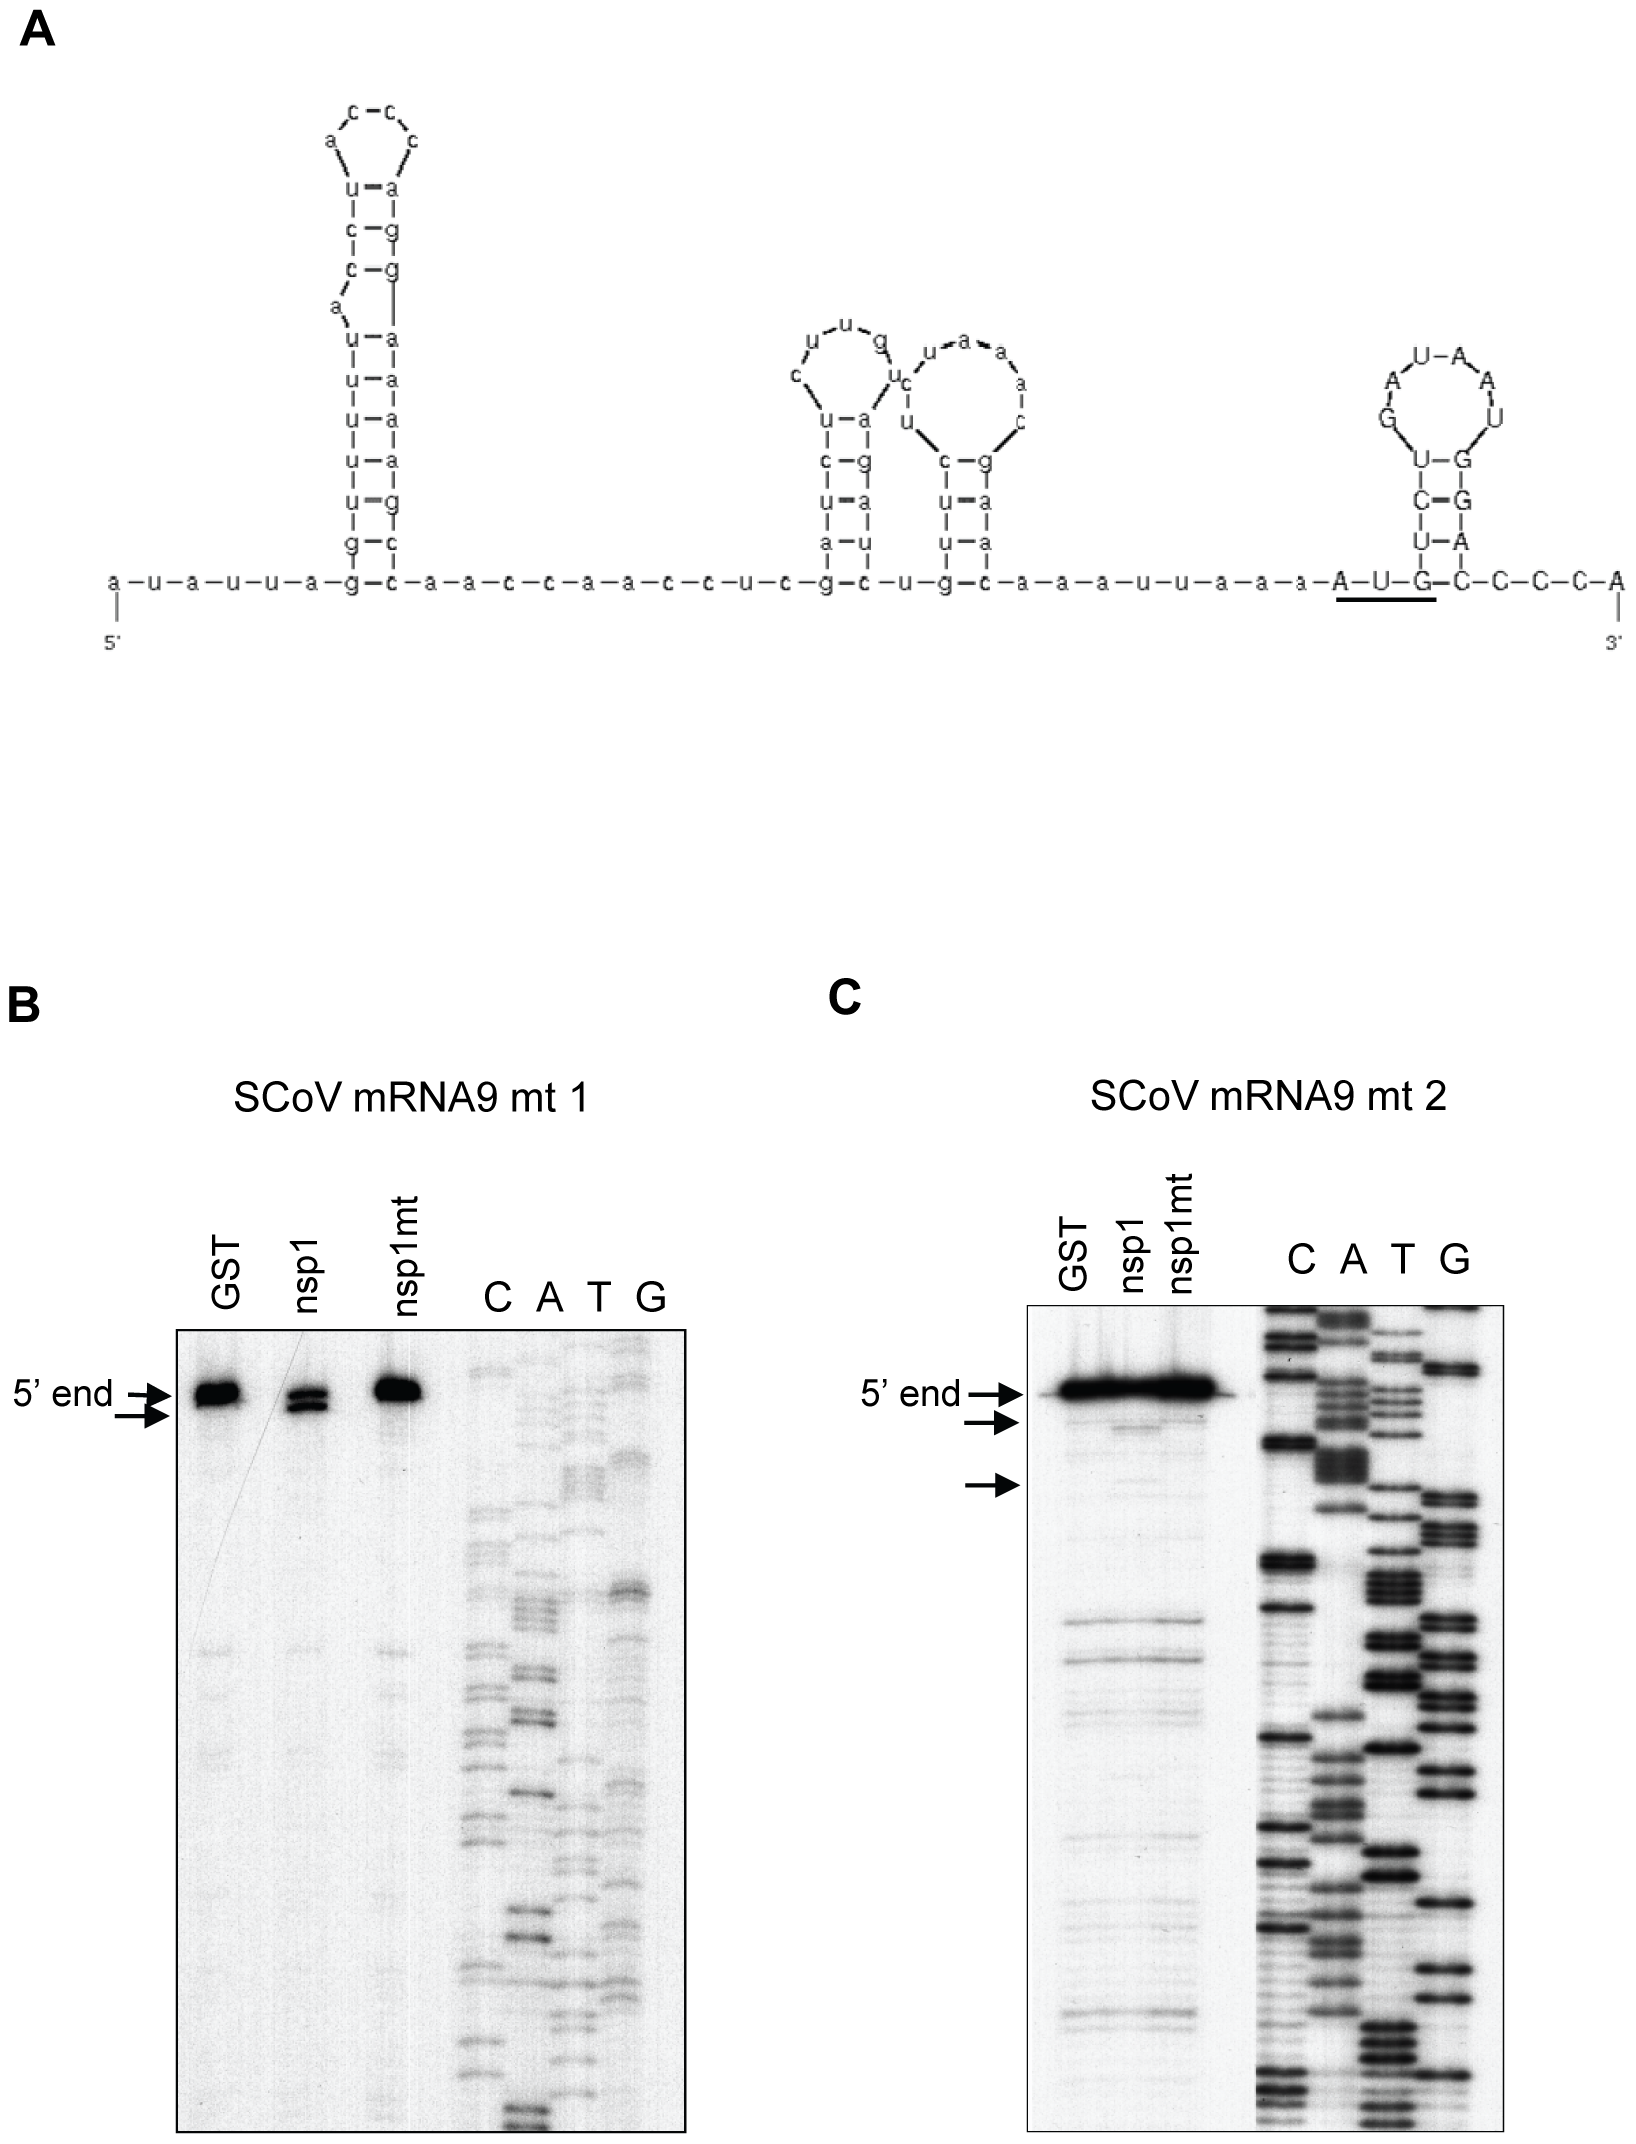 Susceptibilities of SCoV mRNA 9 mutants to nsp1-induced RNA modification.